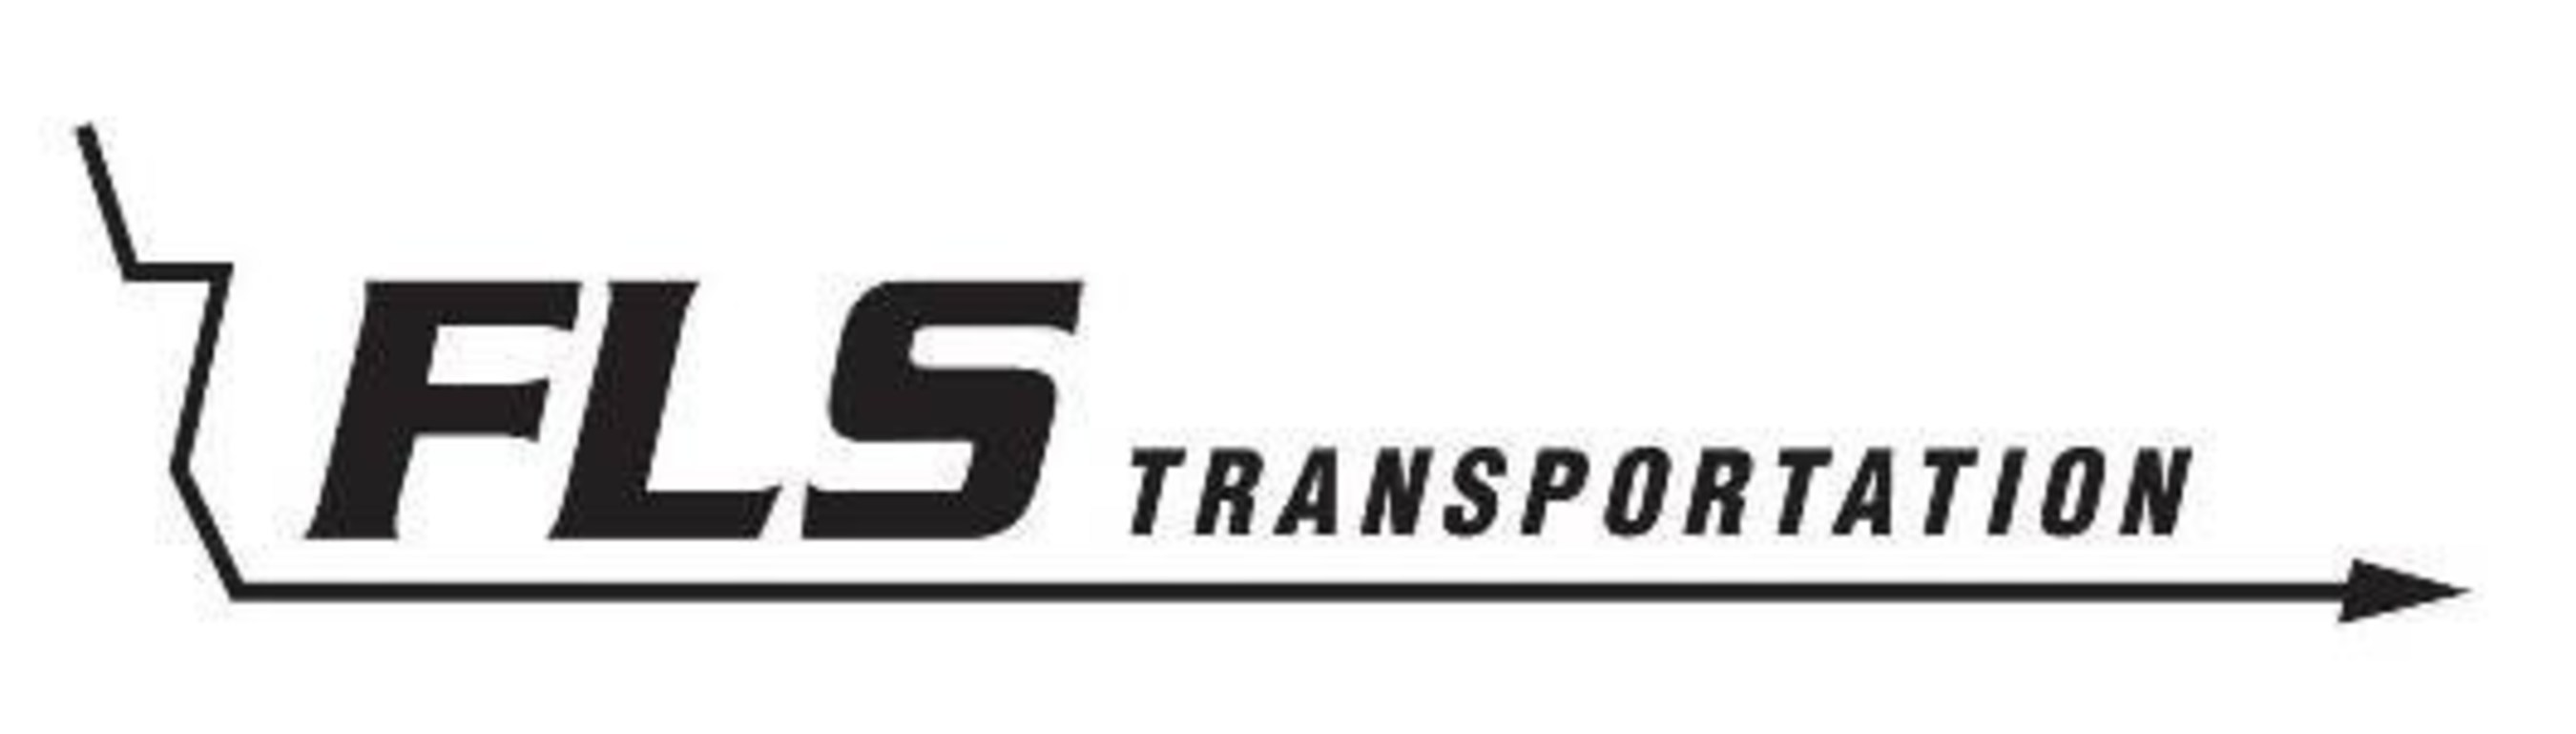 Pierre Gagne, MBA, CPA, ICD.D Appointed Senior Vice President and Chief Financial Officer at FLS Transportation Services Limited